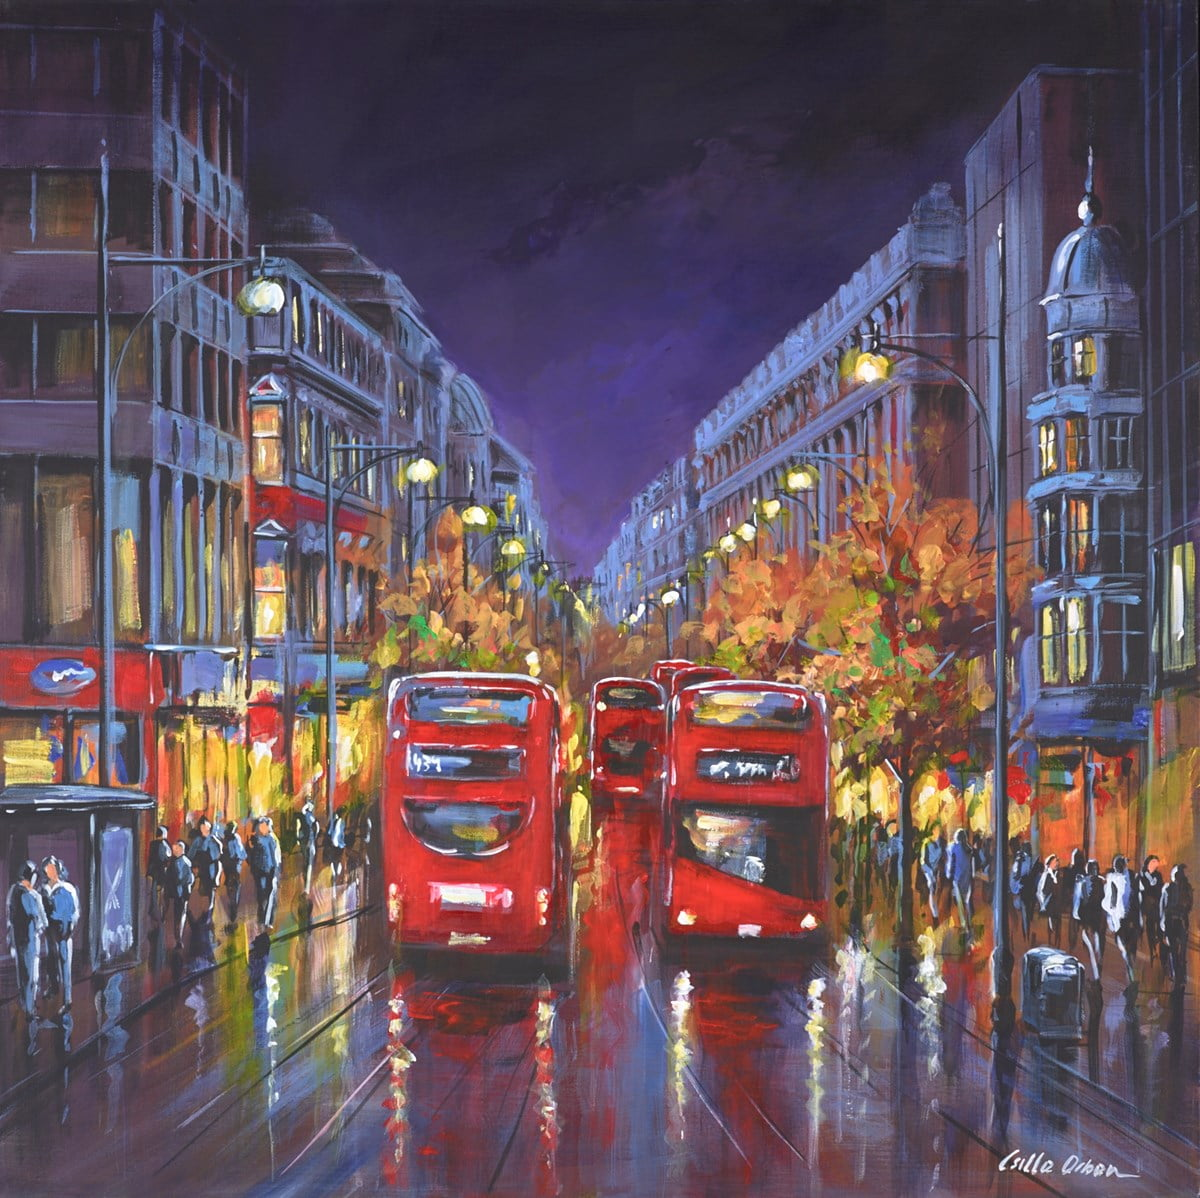 Oxford Street, London at Night ~ Csilla Orban